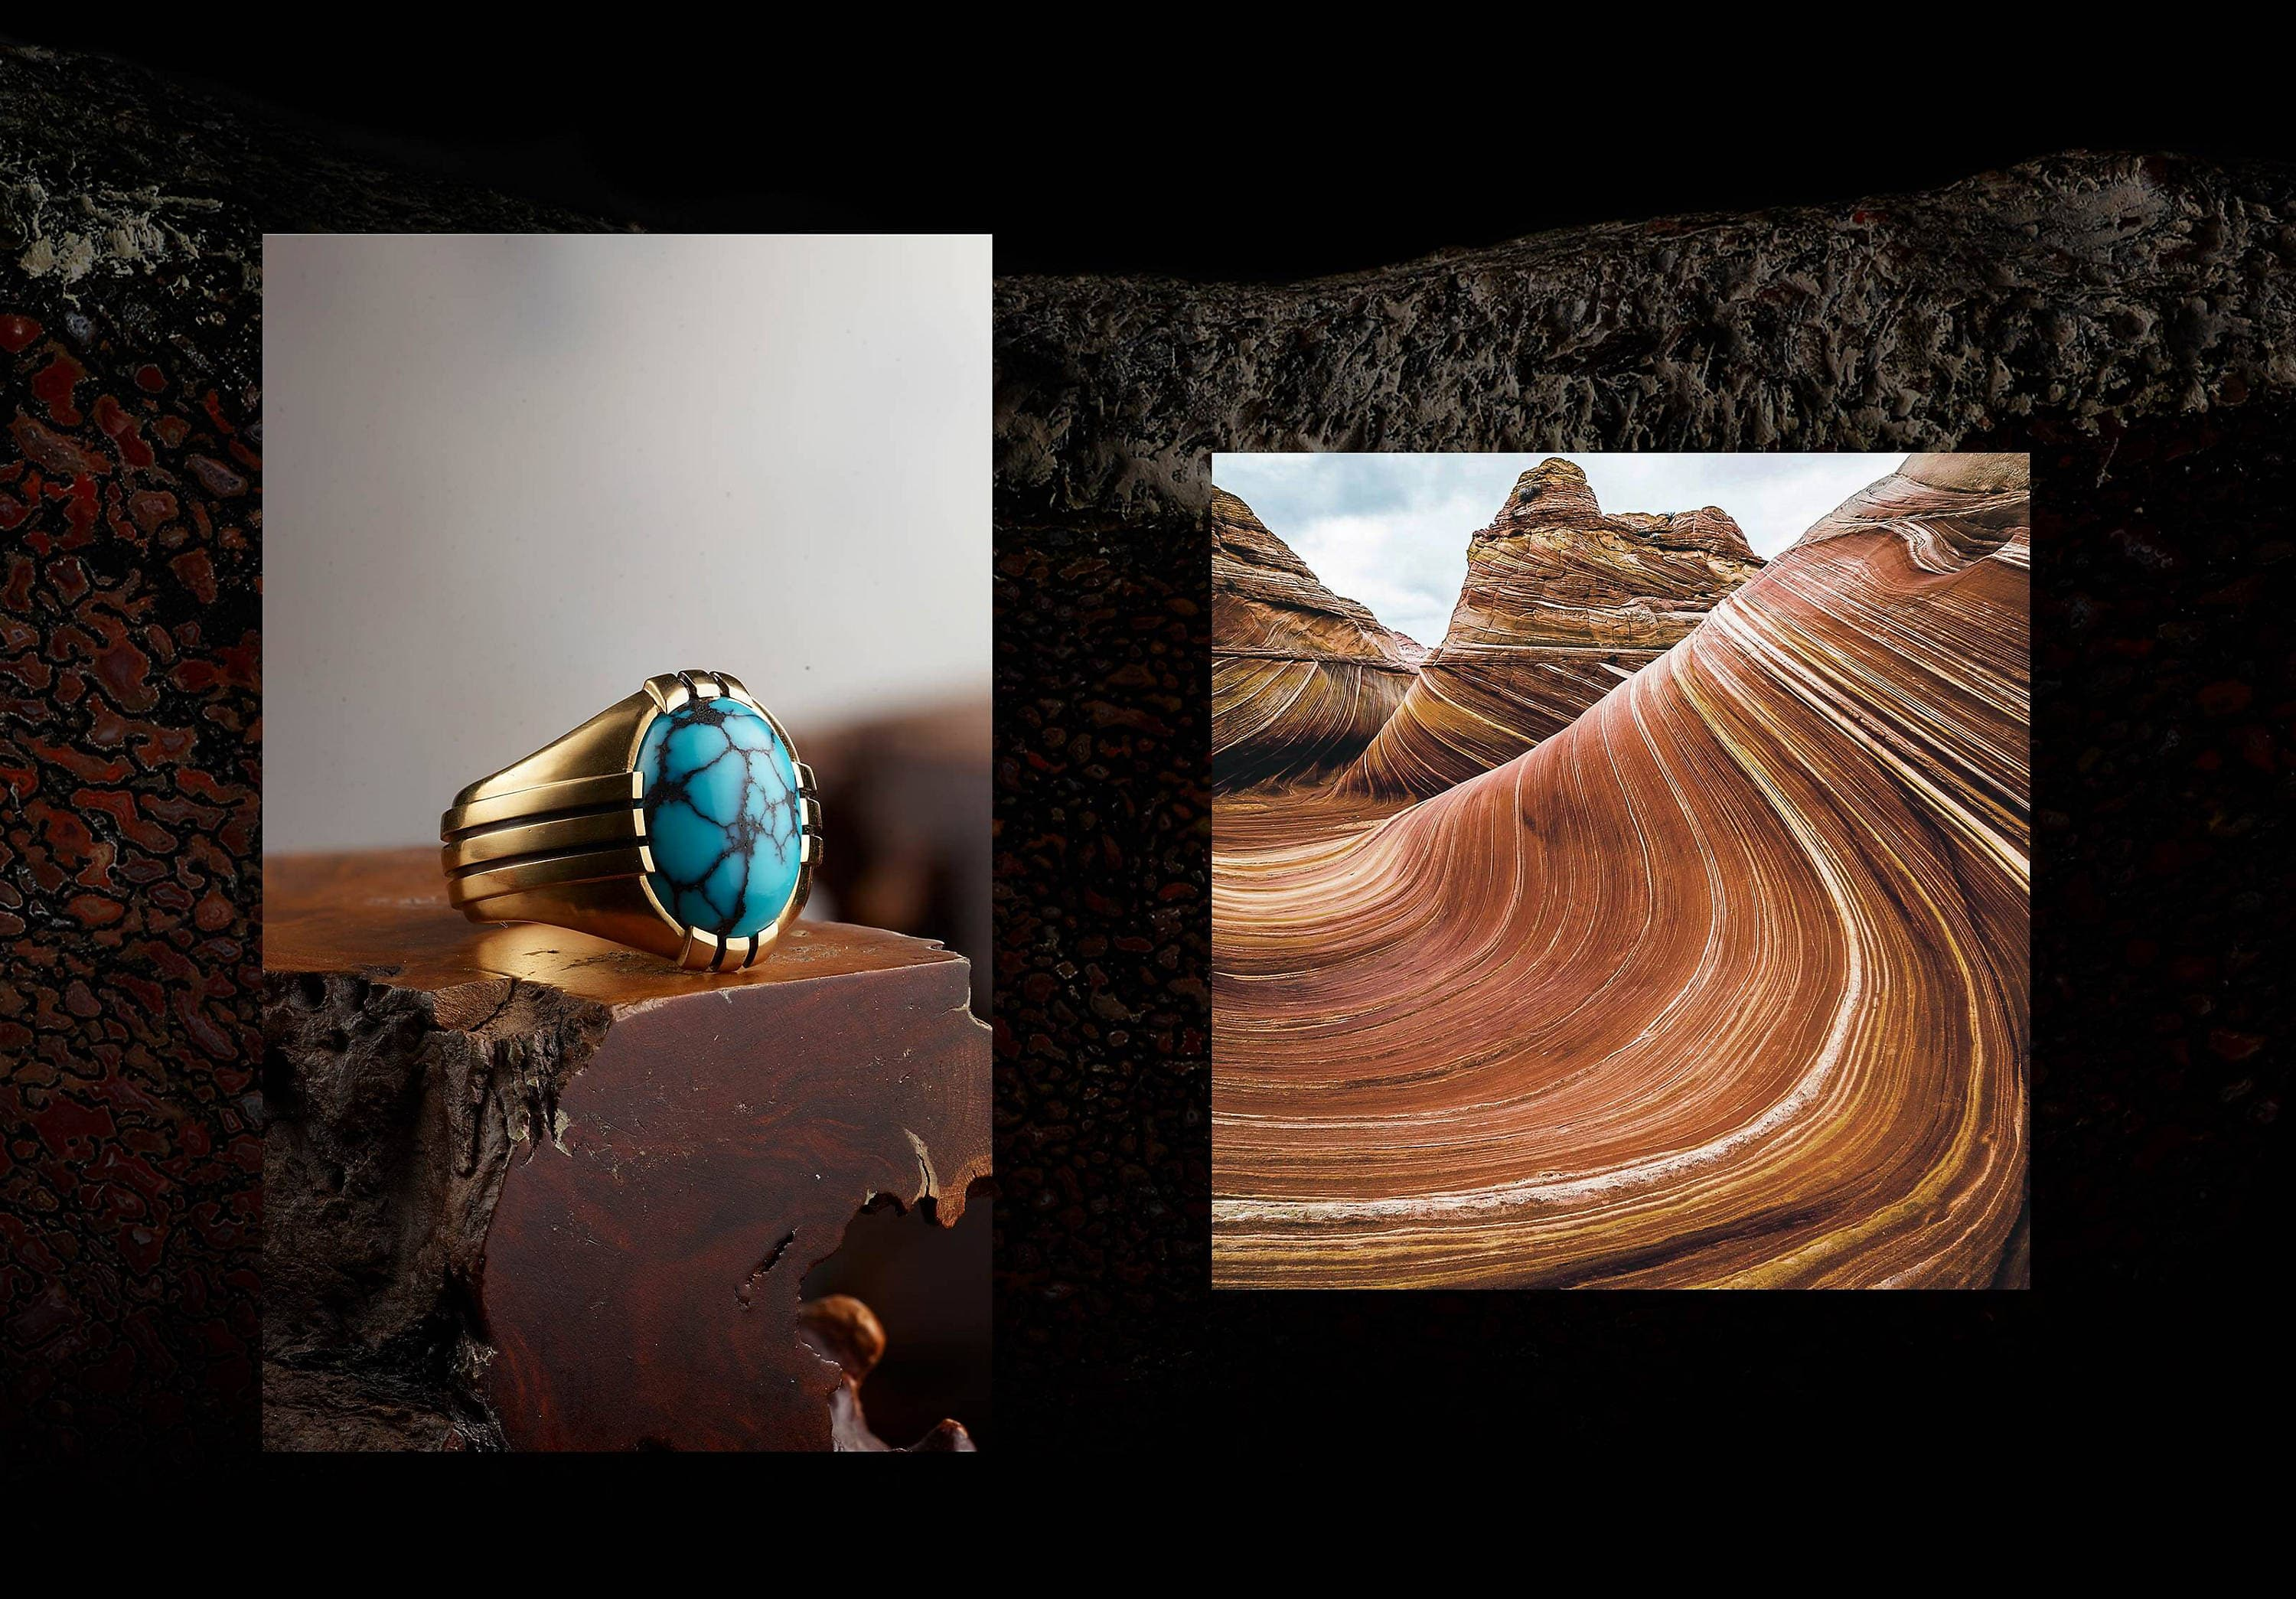 Two color photos are juxtaposed on a dark photo of a piece of stone on a black background. On the left is an image showing a David Yurman Southwest men's signet ring in 18K gold with turquoise placed atop a brown wood block. On the right is a photo of a mountain landscape with multi-colored swirls of sandstone.